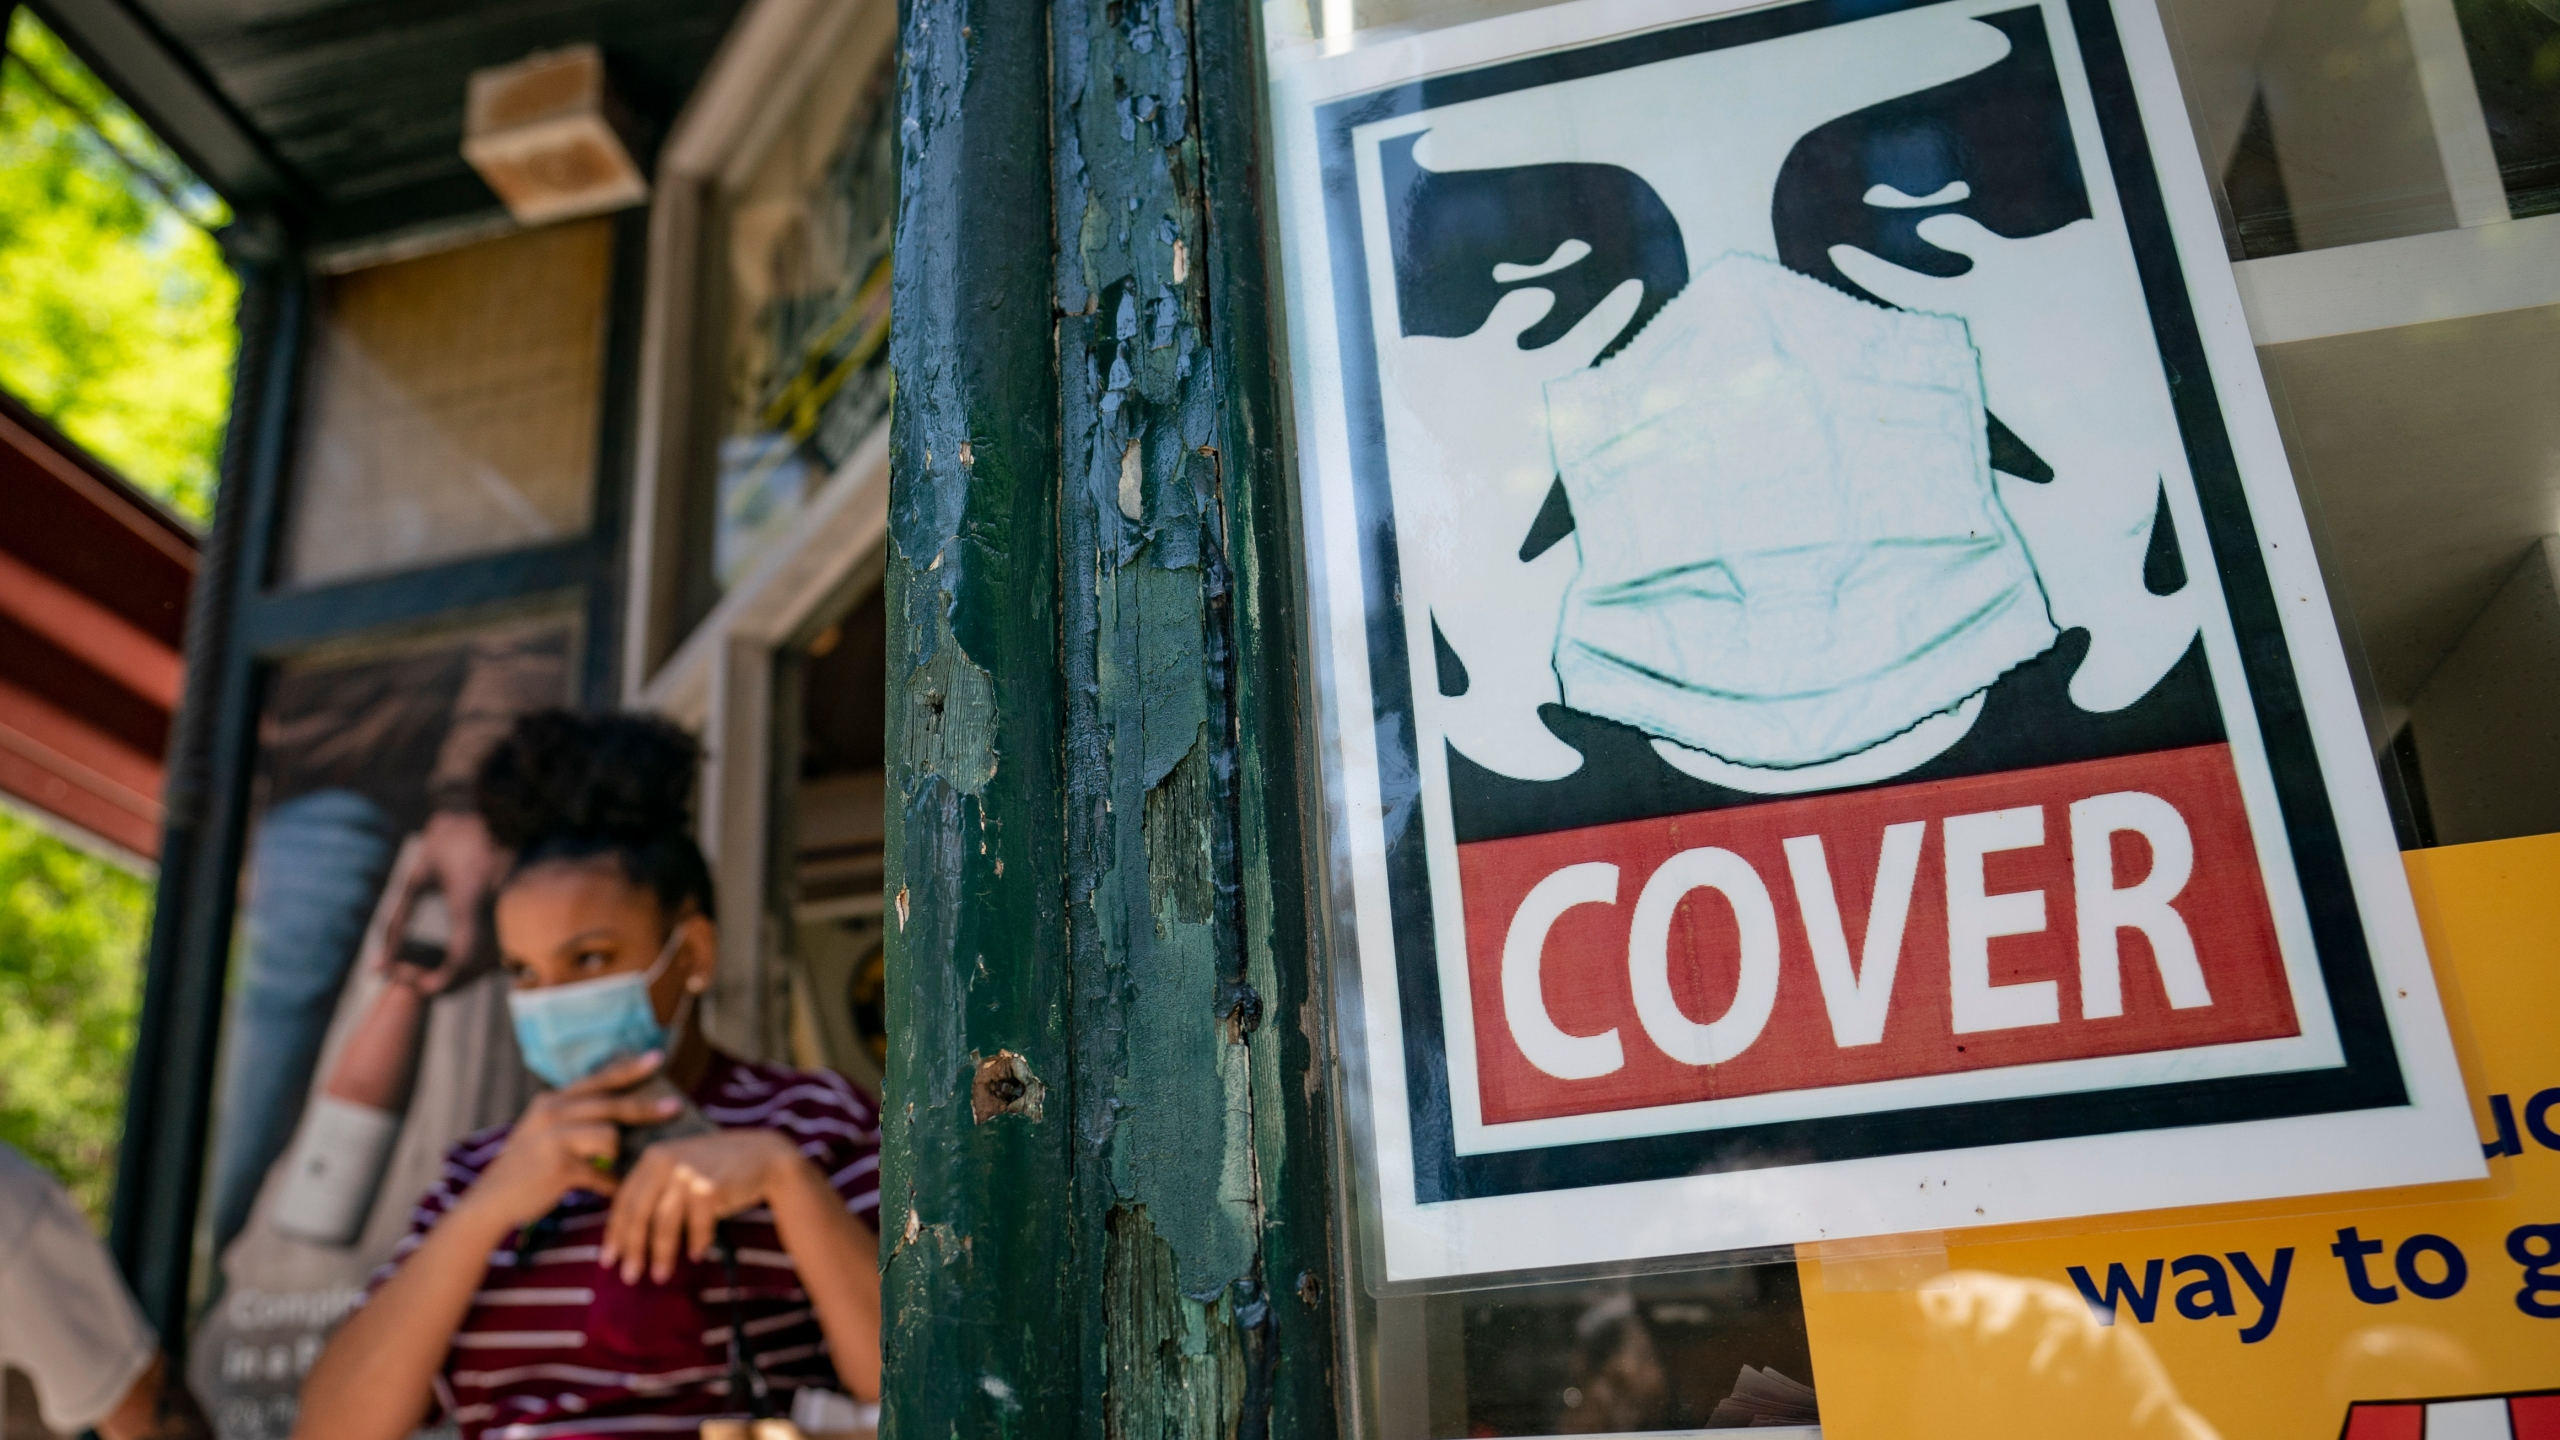 A customer exits a corner market while wearing a protective mask in the retail shopping district of the SoHo neighborhood of the Manhattan borough of New York, Friday, May 14, 2021. (AP Photo/John Minchillo)